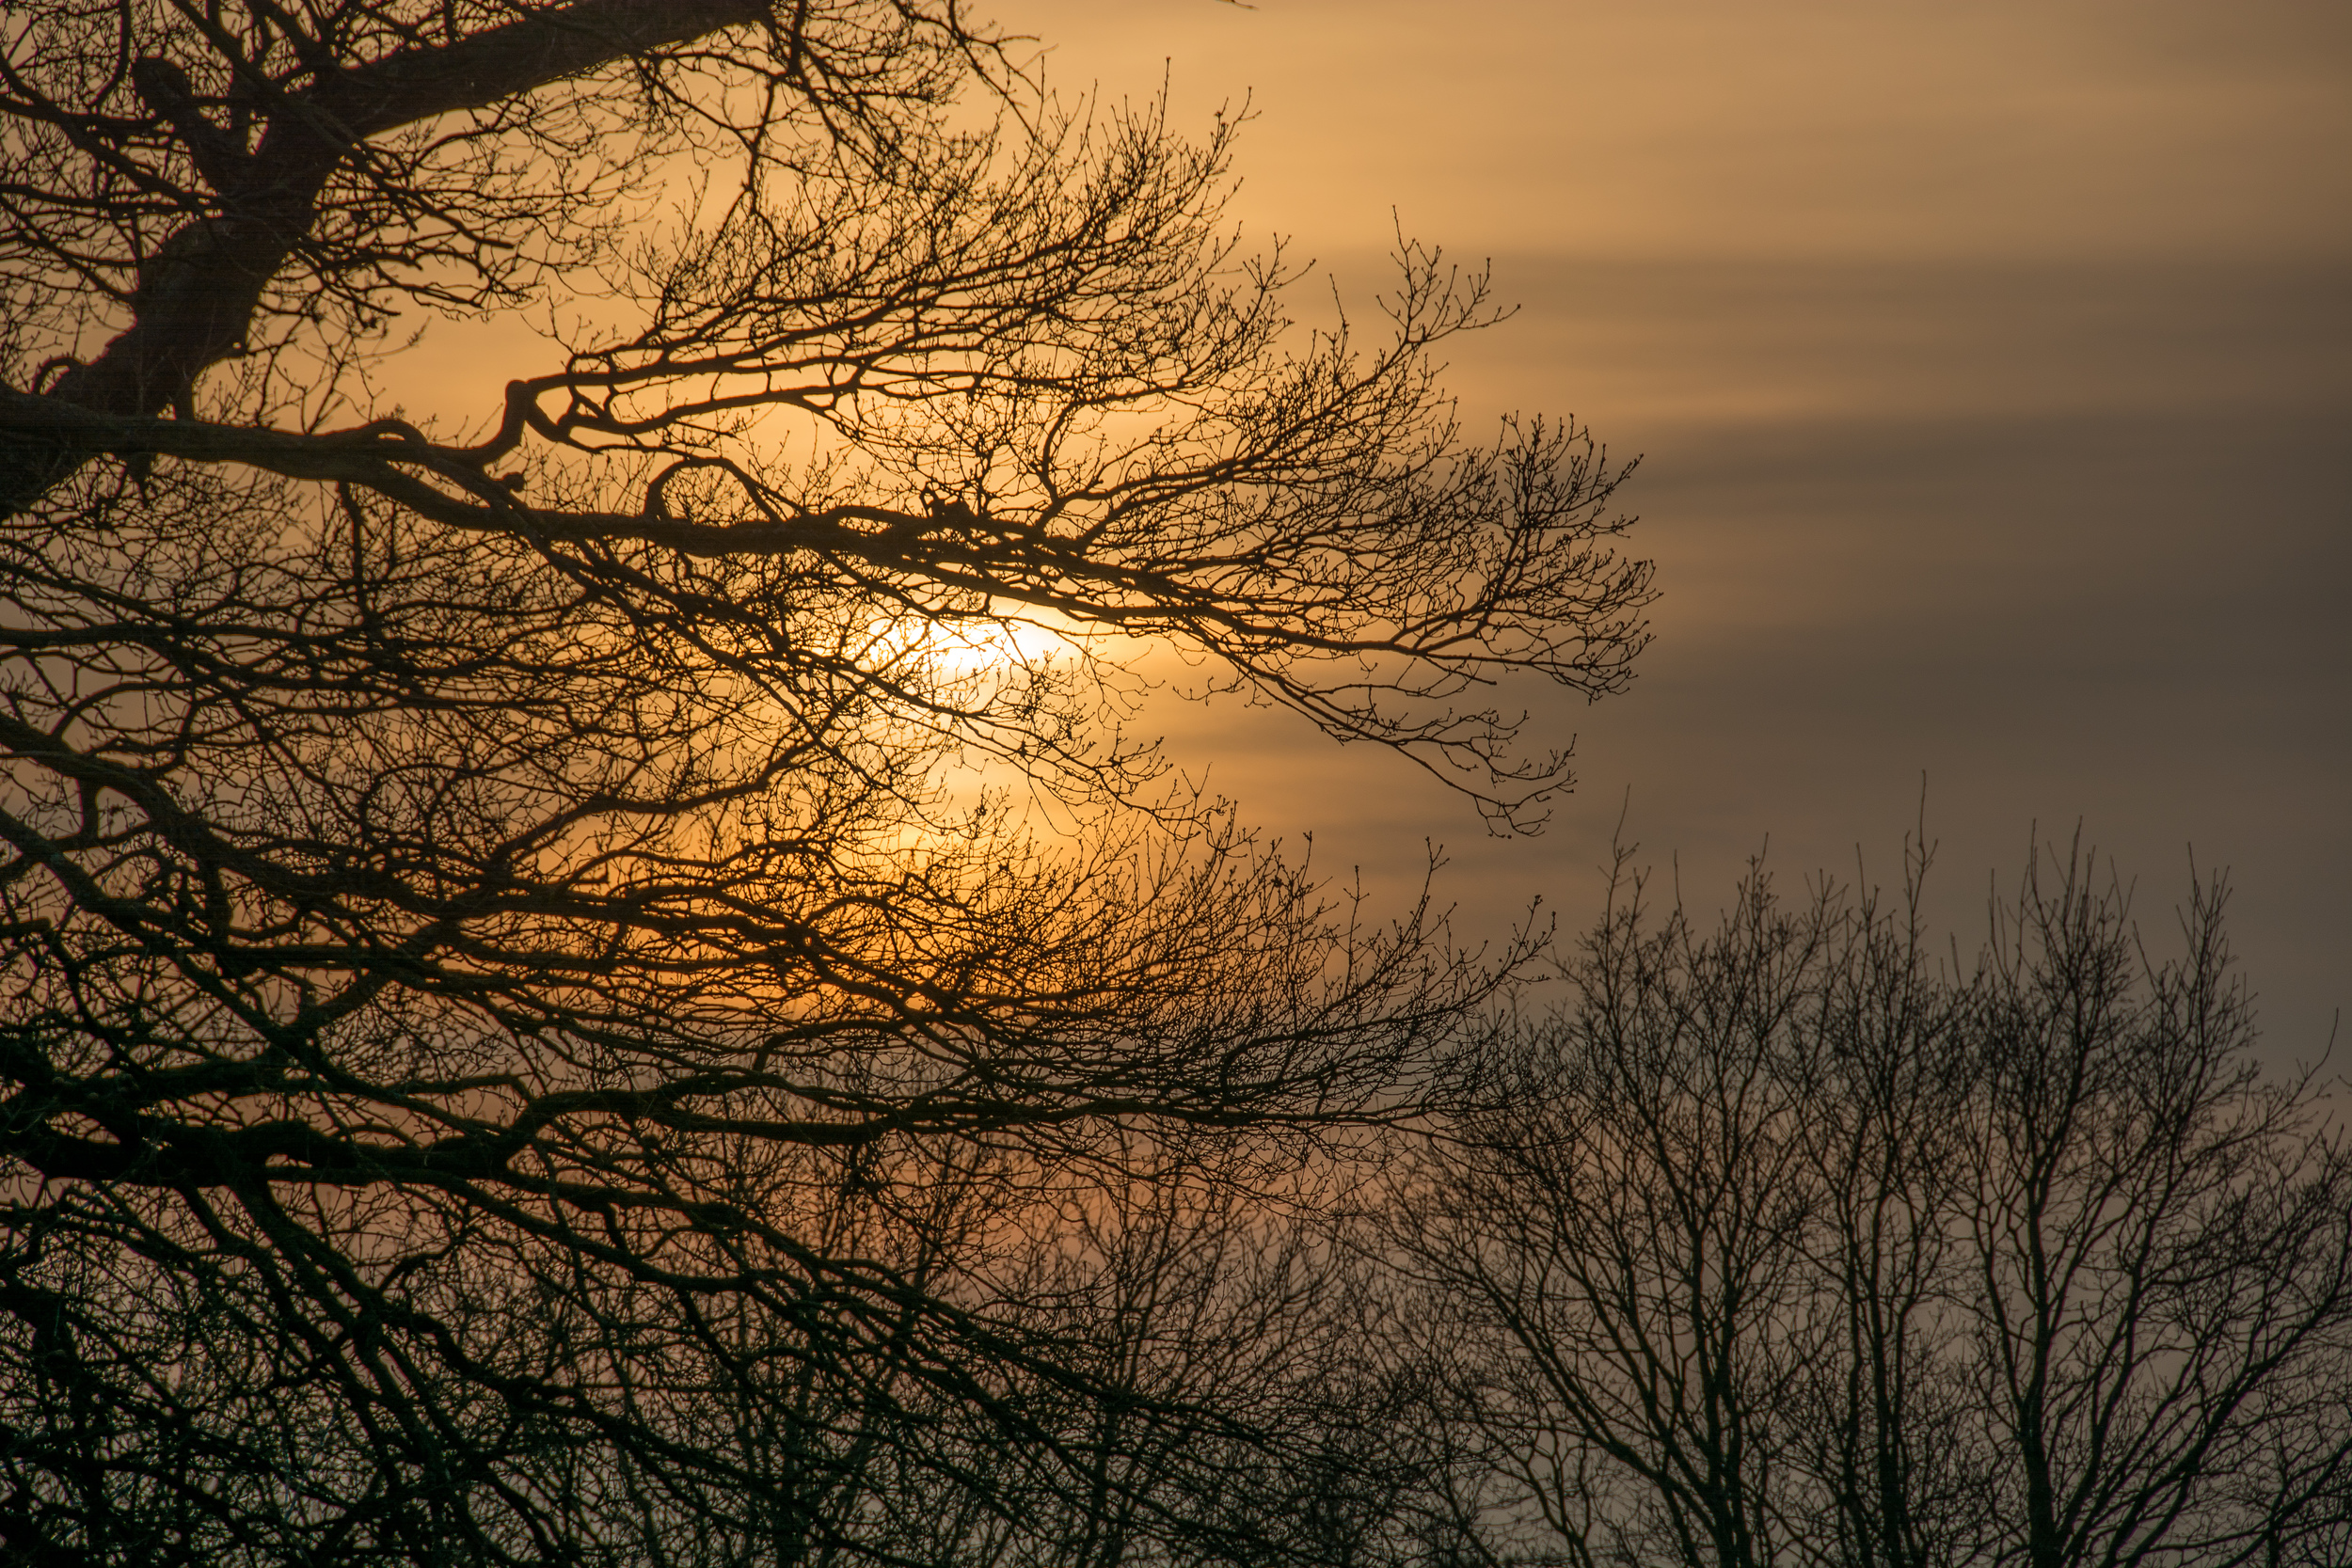 Bare Branches in the Sunrise